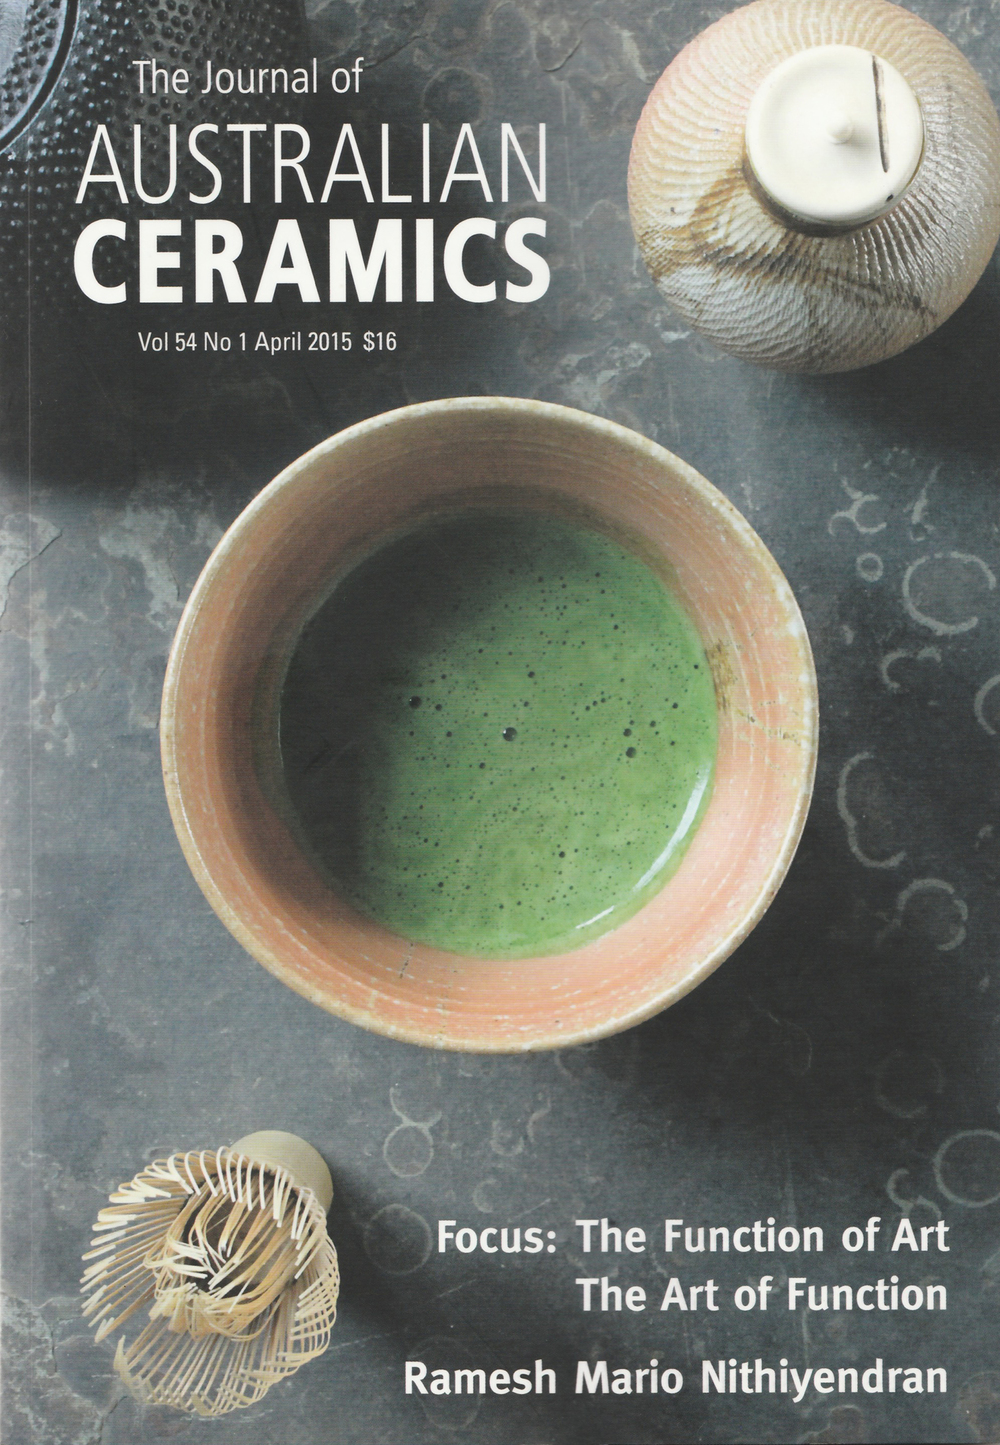 READ: Journal of Australian Ceramics 54/1 2015